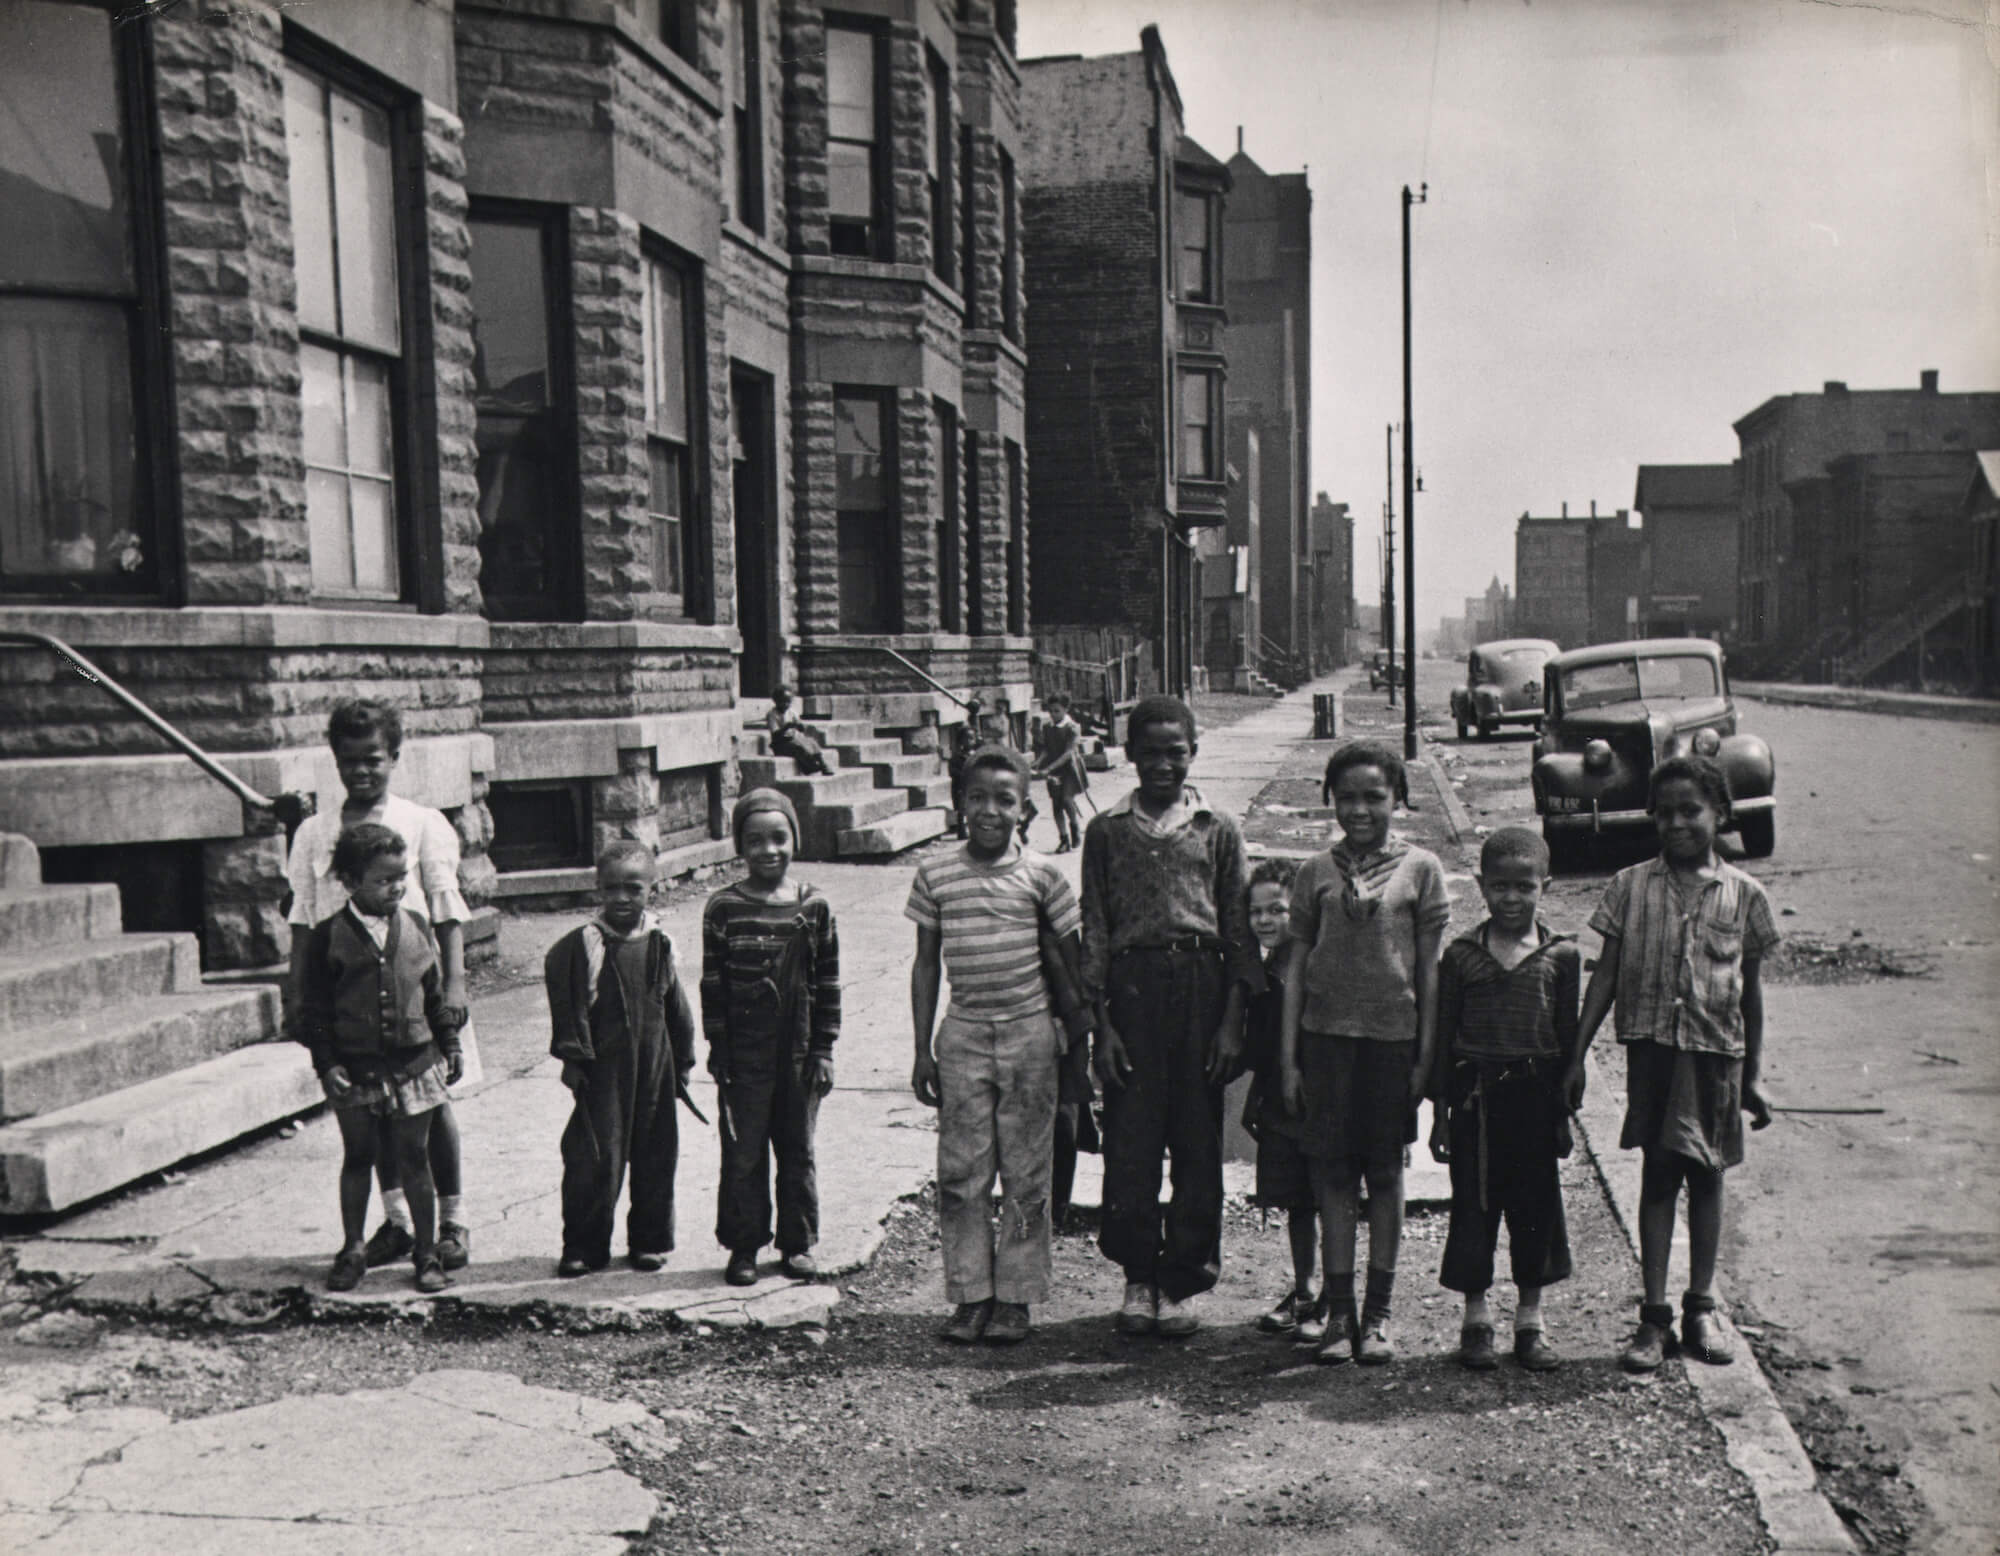 Children on a Sidewalk in Chicago, 1944